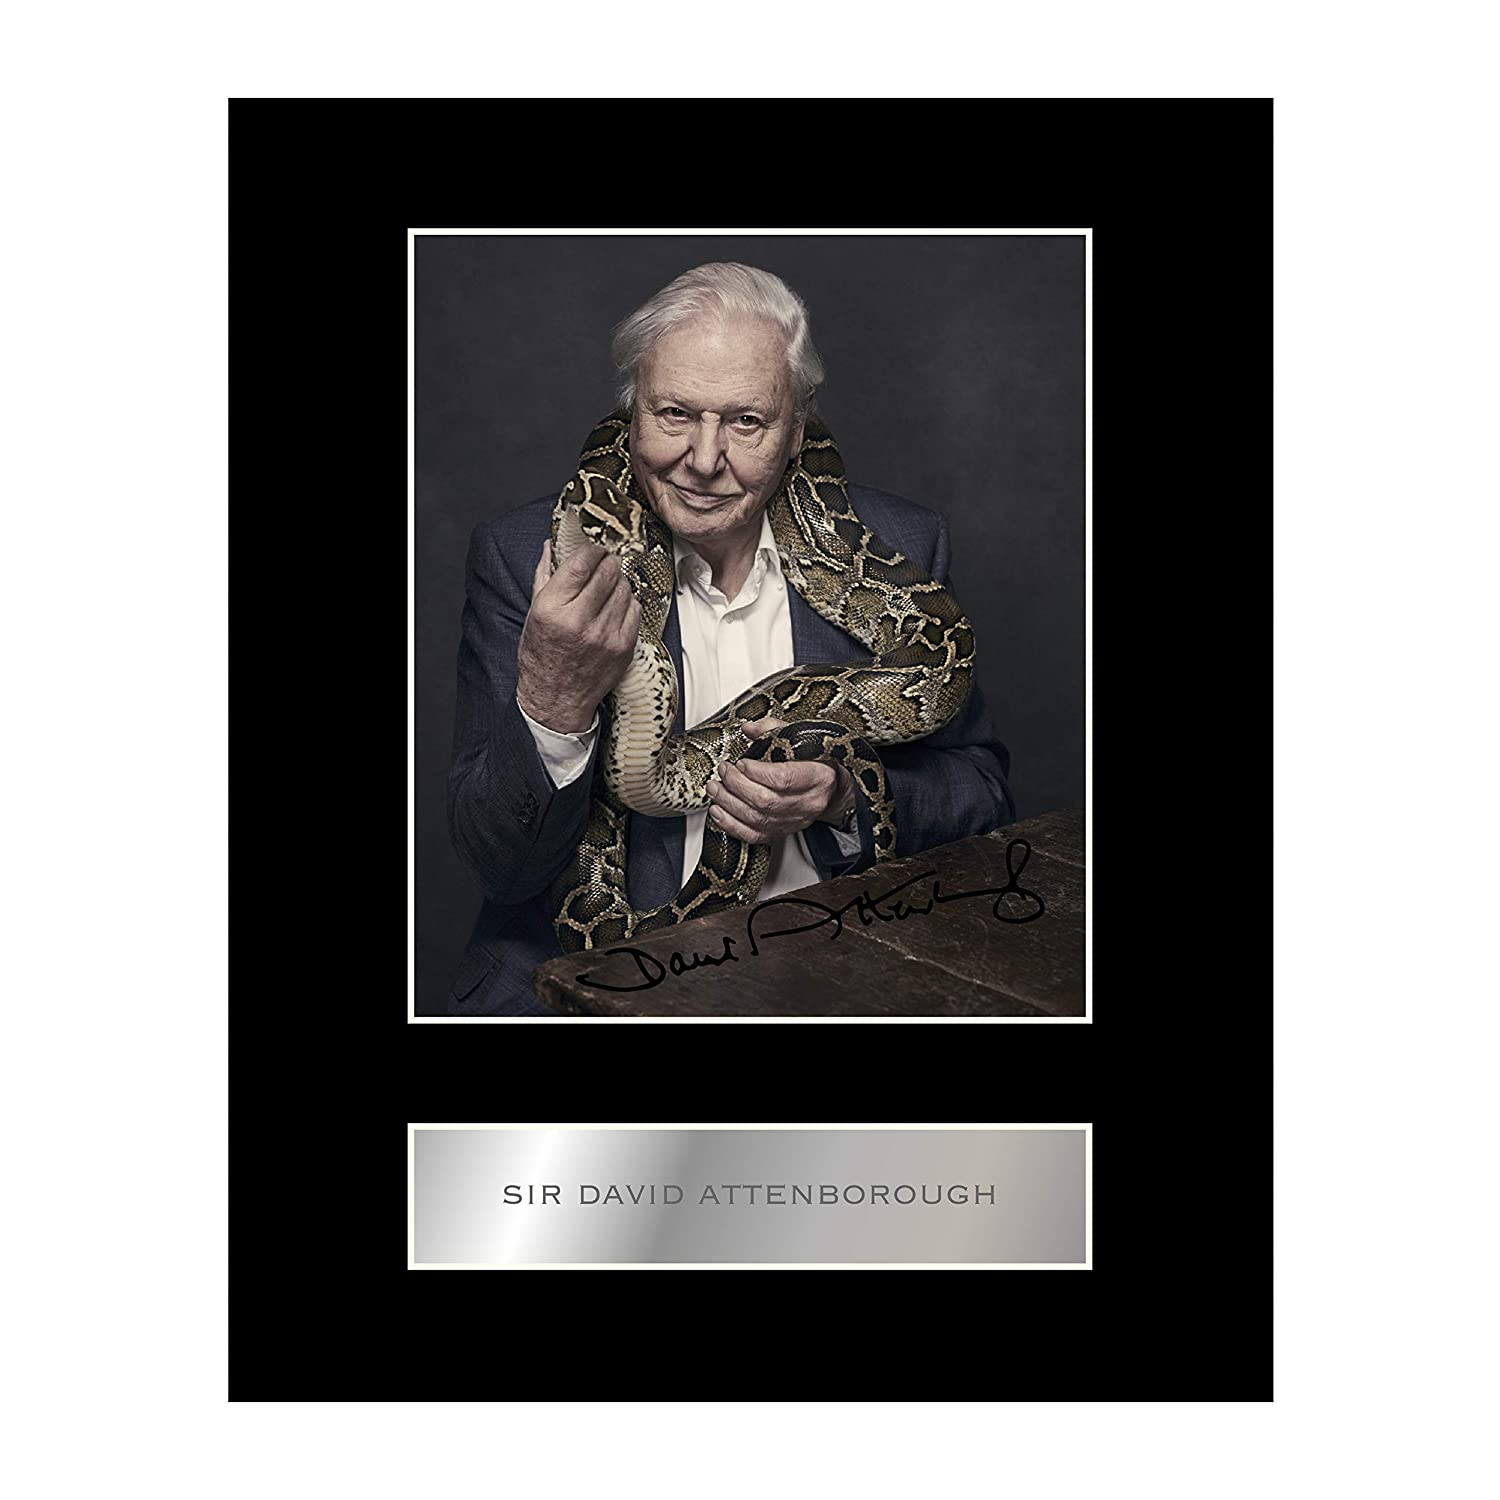 Sir David Attenborough Signed Mounted Photo Display #3 Autographed Gift Picture Print Iconic pics